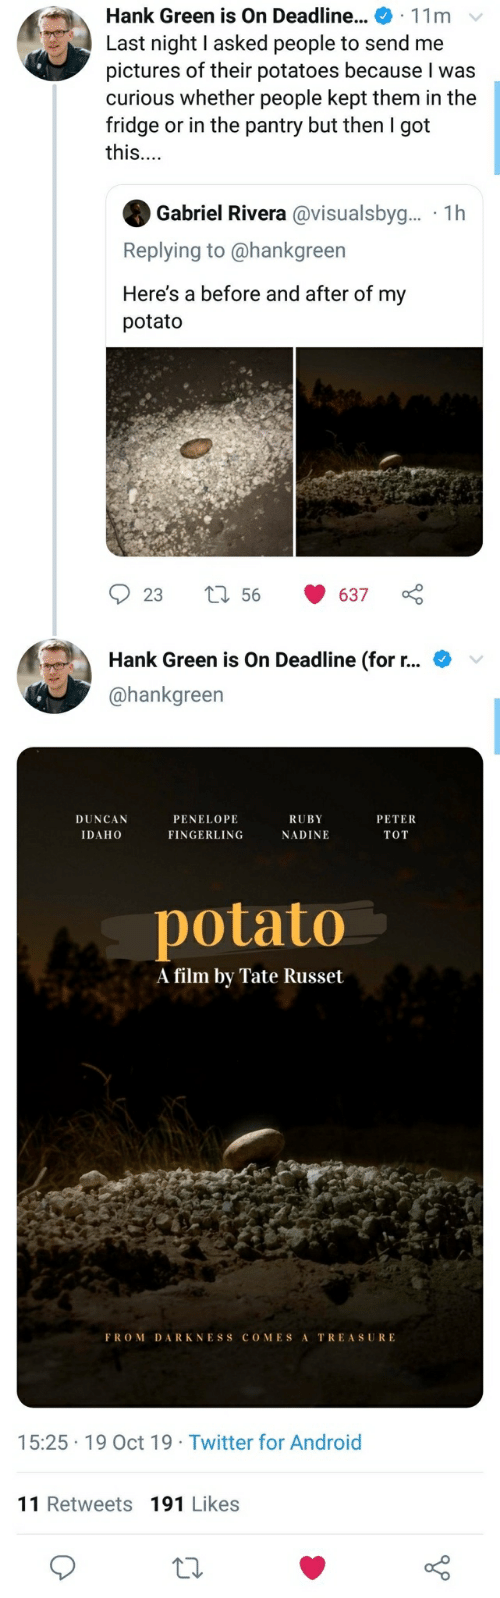 Android, Twitter, and Pictures: Hank Green is On Deadline... 11m  Last night I asked people to send me  pictures of their potatoes because I was  curious whether people kept them in the  fridge or in the pantry but then I got  this...  Gabriel Rivera @visualsbyg... 1h  Replying to @hankgreen  Here's a before and after of my  potato  56  23  637  Hank Green is On Deadline (for r...  @hankgreen  DUNCAN  PENELOPE  RUBY  PETER  IDAHO  FINGERLING  NADINE  TOT  potato  A film by Tate Russet  FROM DARKNESS COMES A  TREASURE  15:25 19 Oct 19 Twitter for Android  11 Retweets 191 Likes